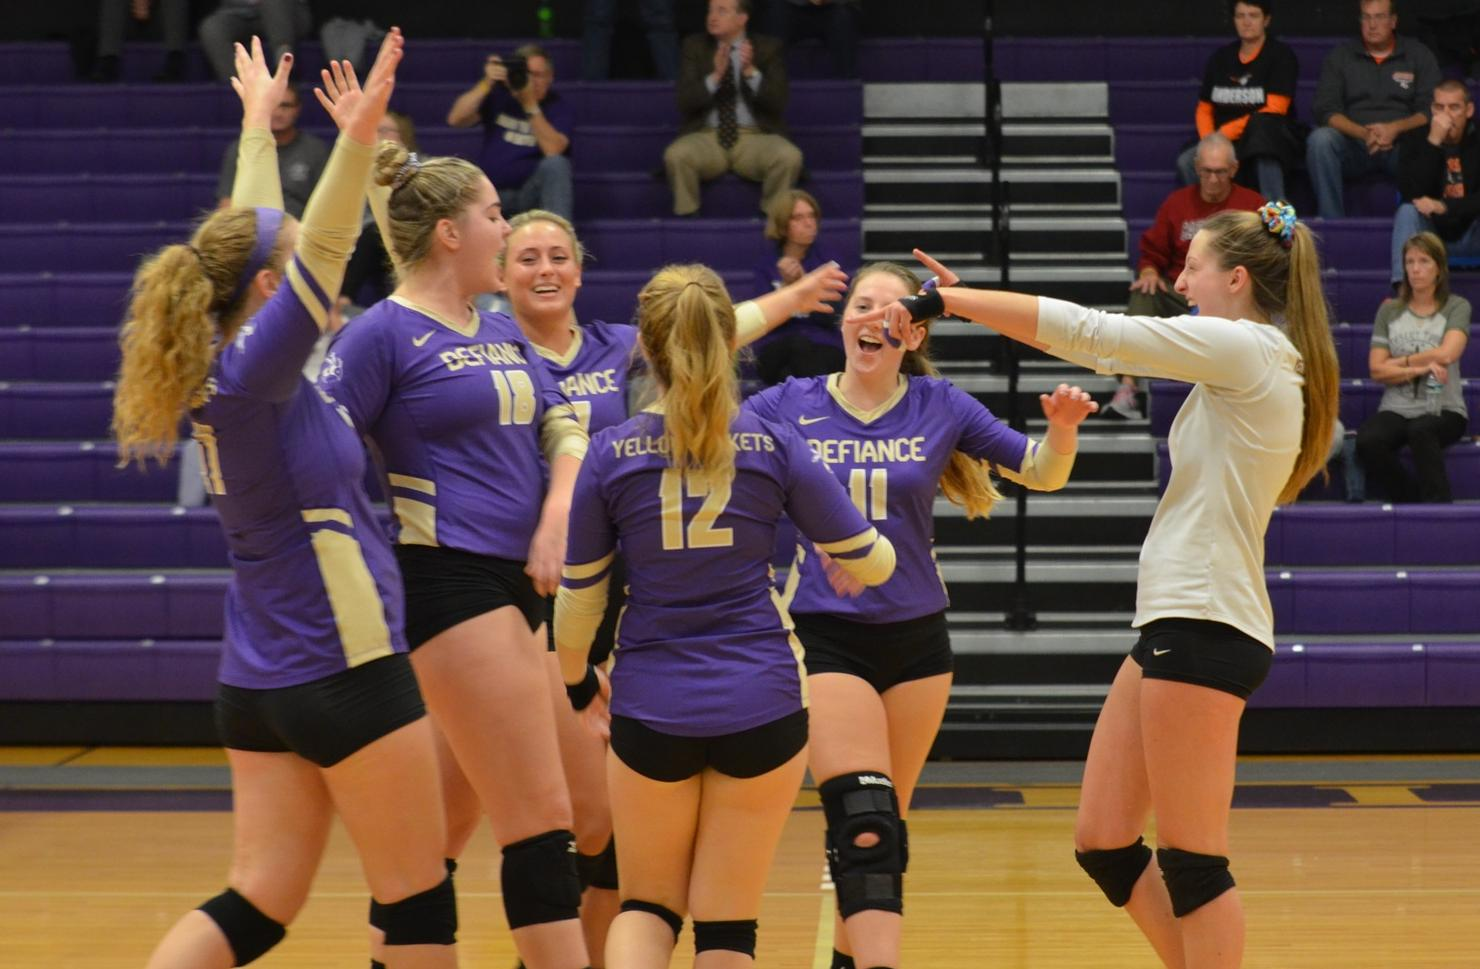 Volleyball Sweeps Their Way to HCAC Victory